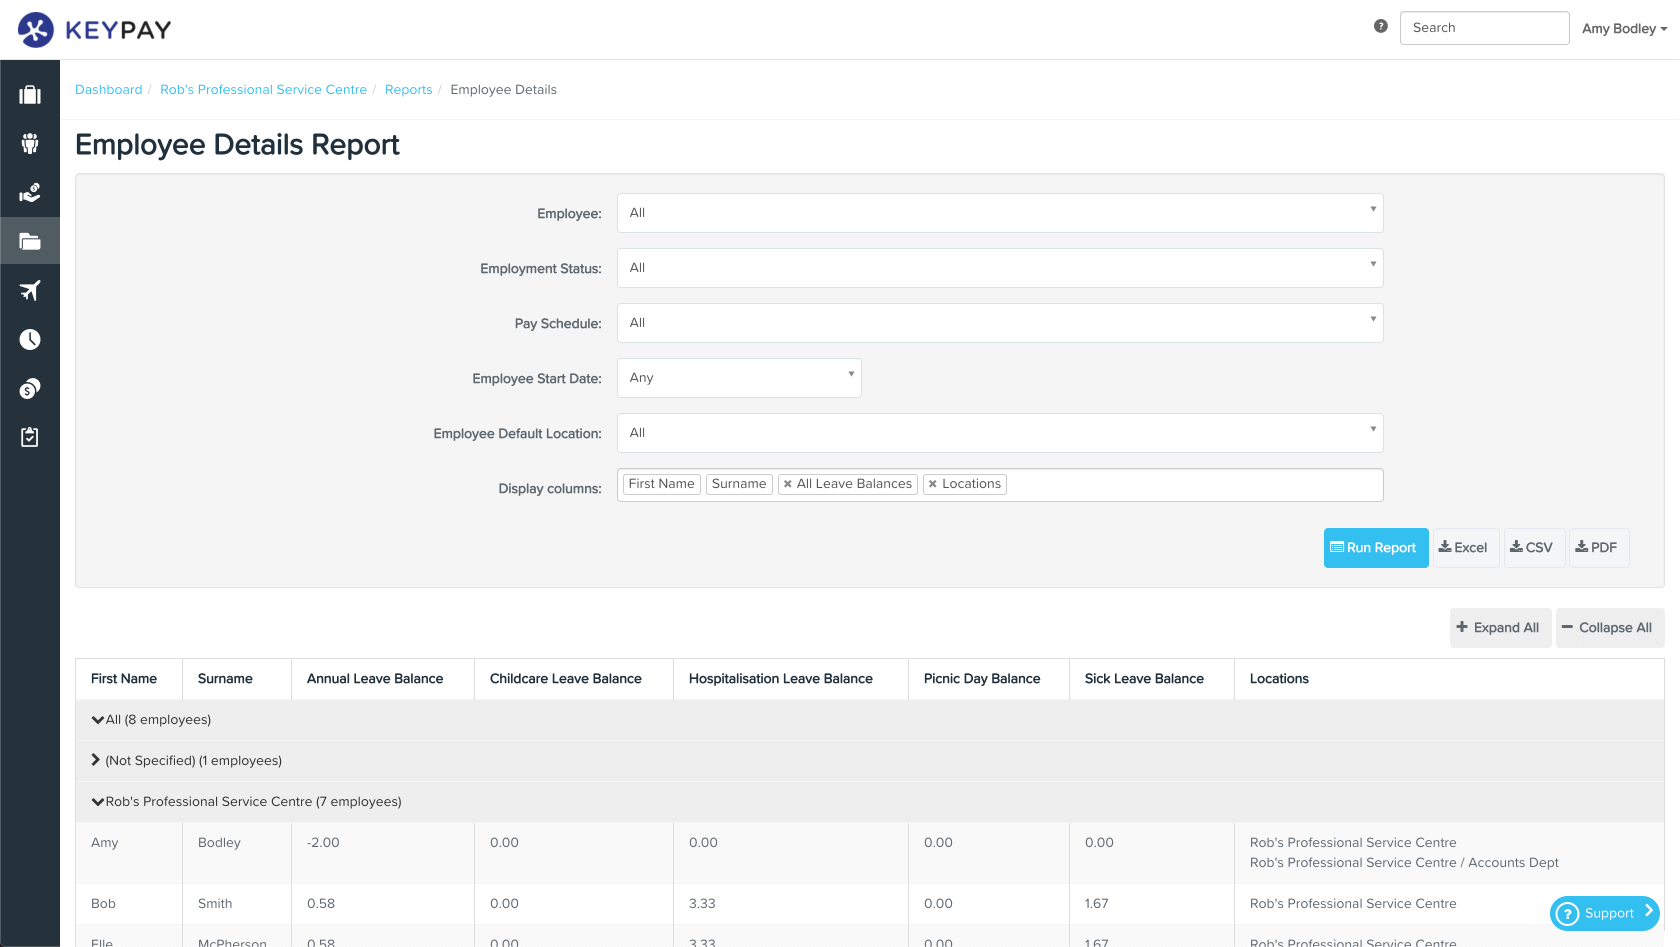 KeyPay SG Employee Details Report